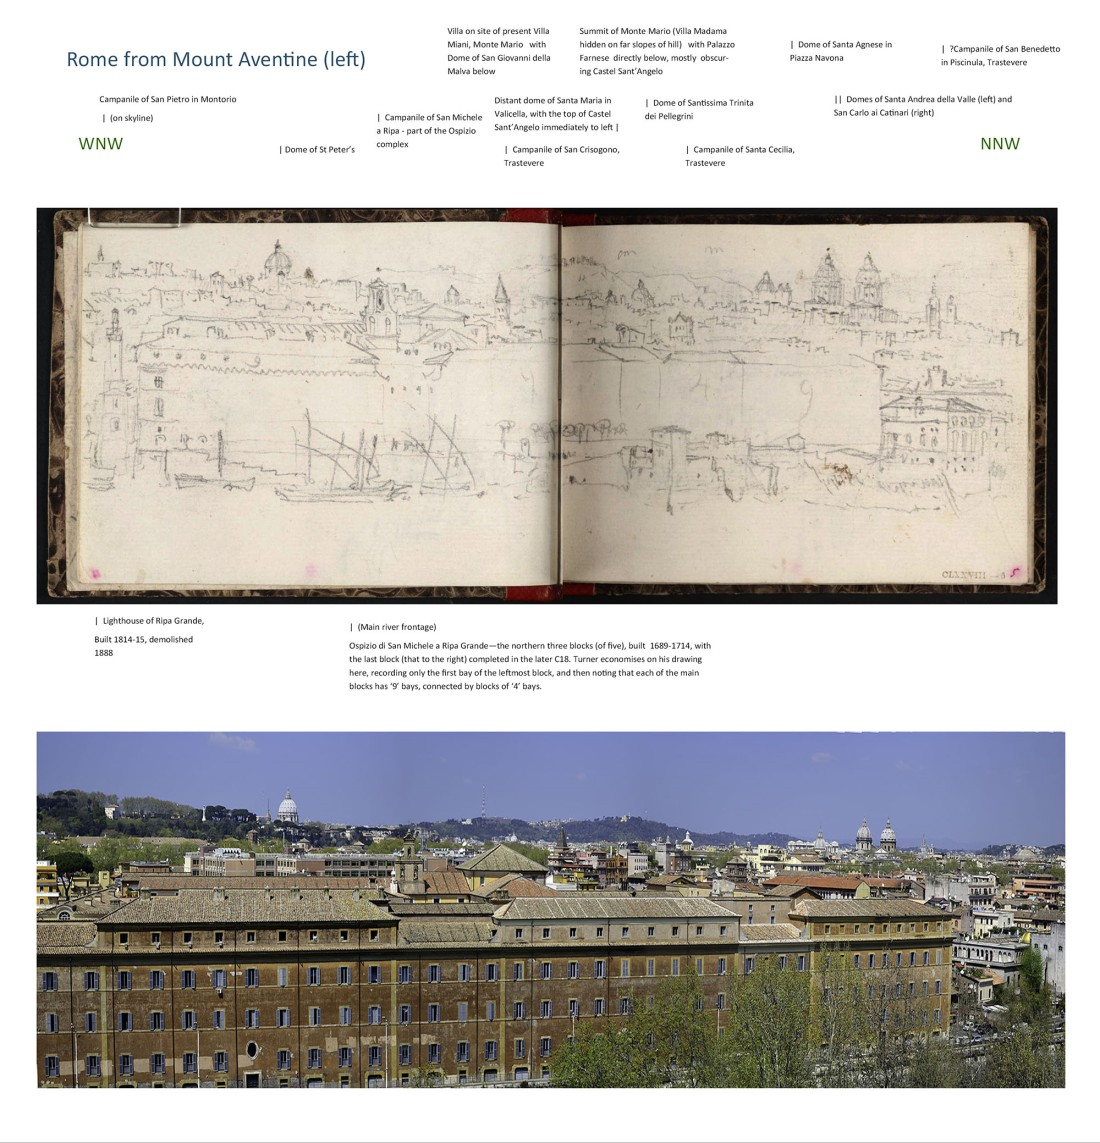 J.M.W.Turner Rome from Mount Aventine, 1828 From the Rimini to Rome sketchbook, TB CLXXVIII 4a-5 Page size, 3 7/8 x 5 3/16 inches, or 97 x 132 mm Photo courtesy of Tate Annotations by Professor David Hill Click on the image to enlarge To see the image in the Tate's online catalogue of the Turner Bequest, click on the following link, and press your browser's 'back' button to return to this page: http://www.tate.org.uk/art/artworks/turner-rome-from-mount-aventine-d14839 Click on image to enlarge